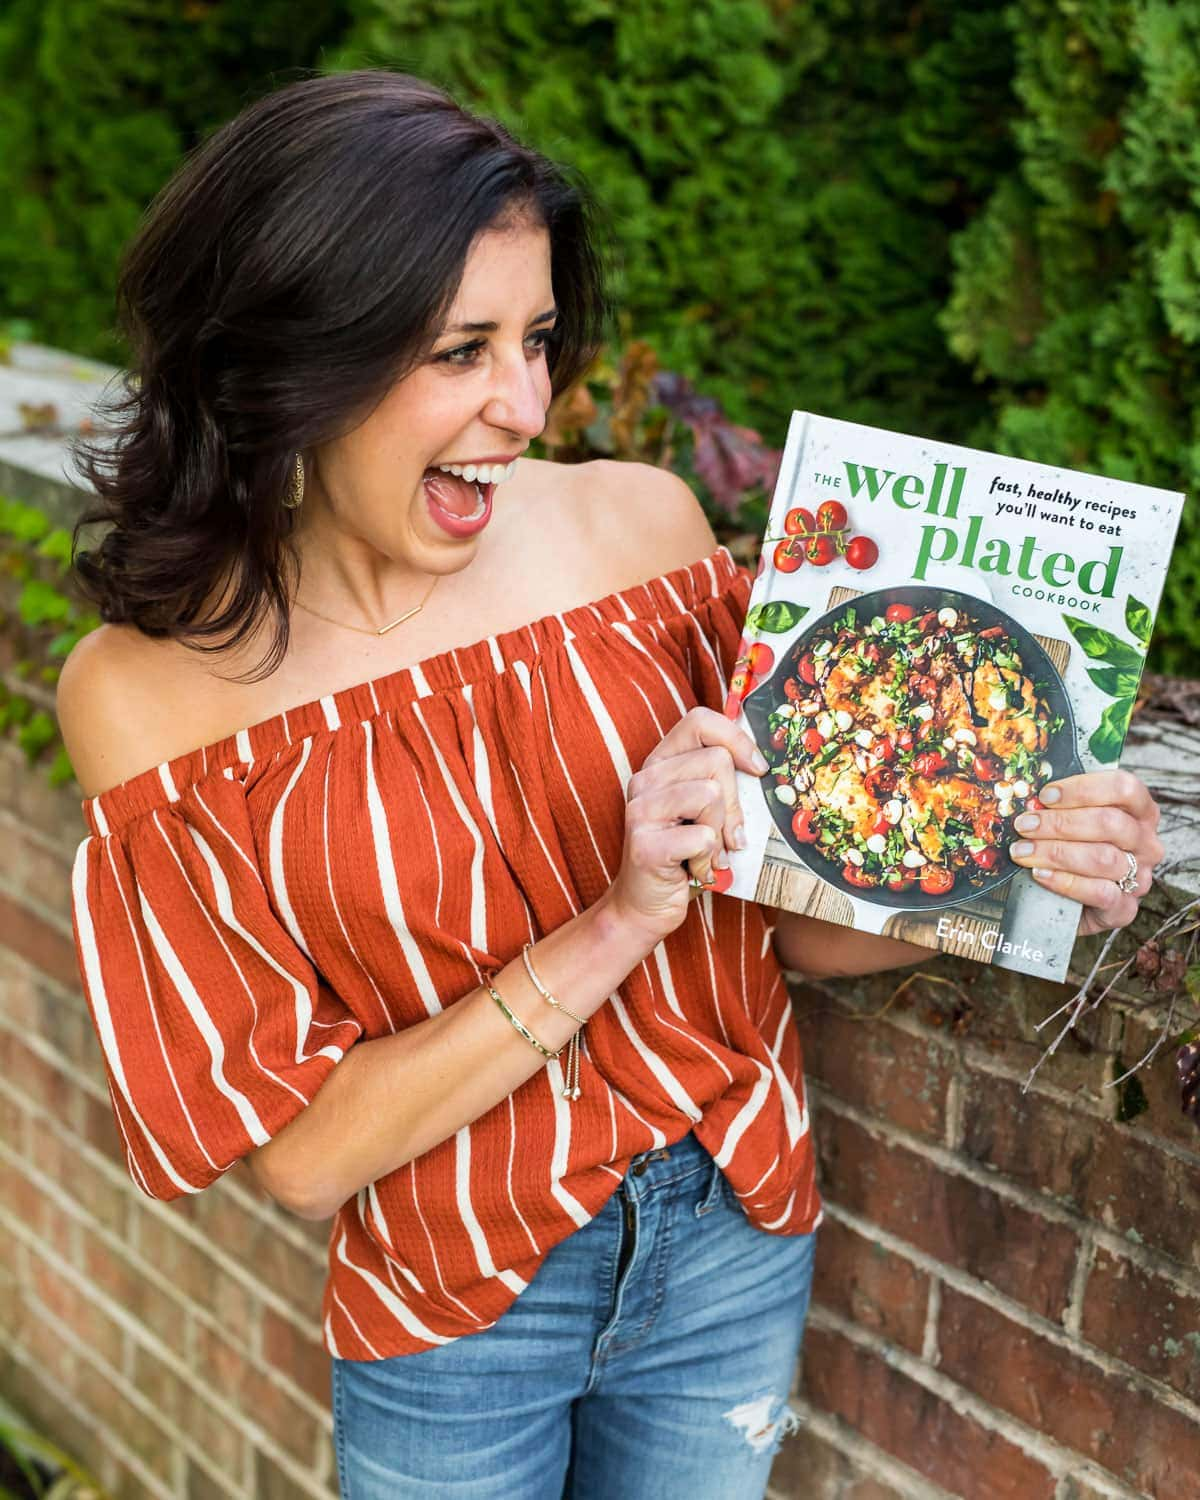 Erin Clarke holding The Well Plated Cookbook to promote a giveaway